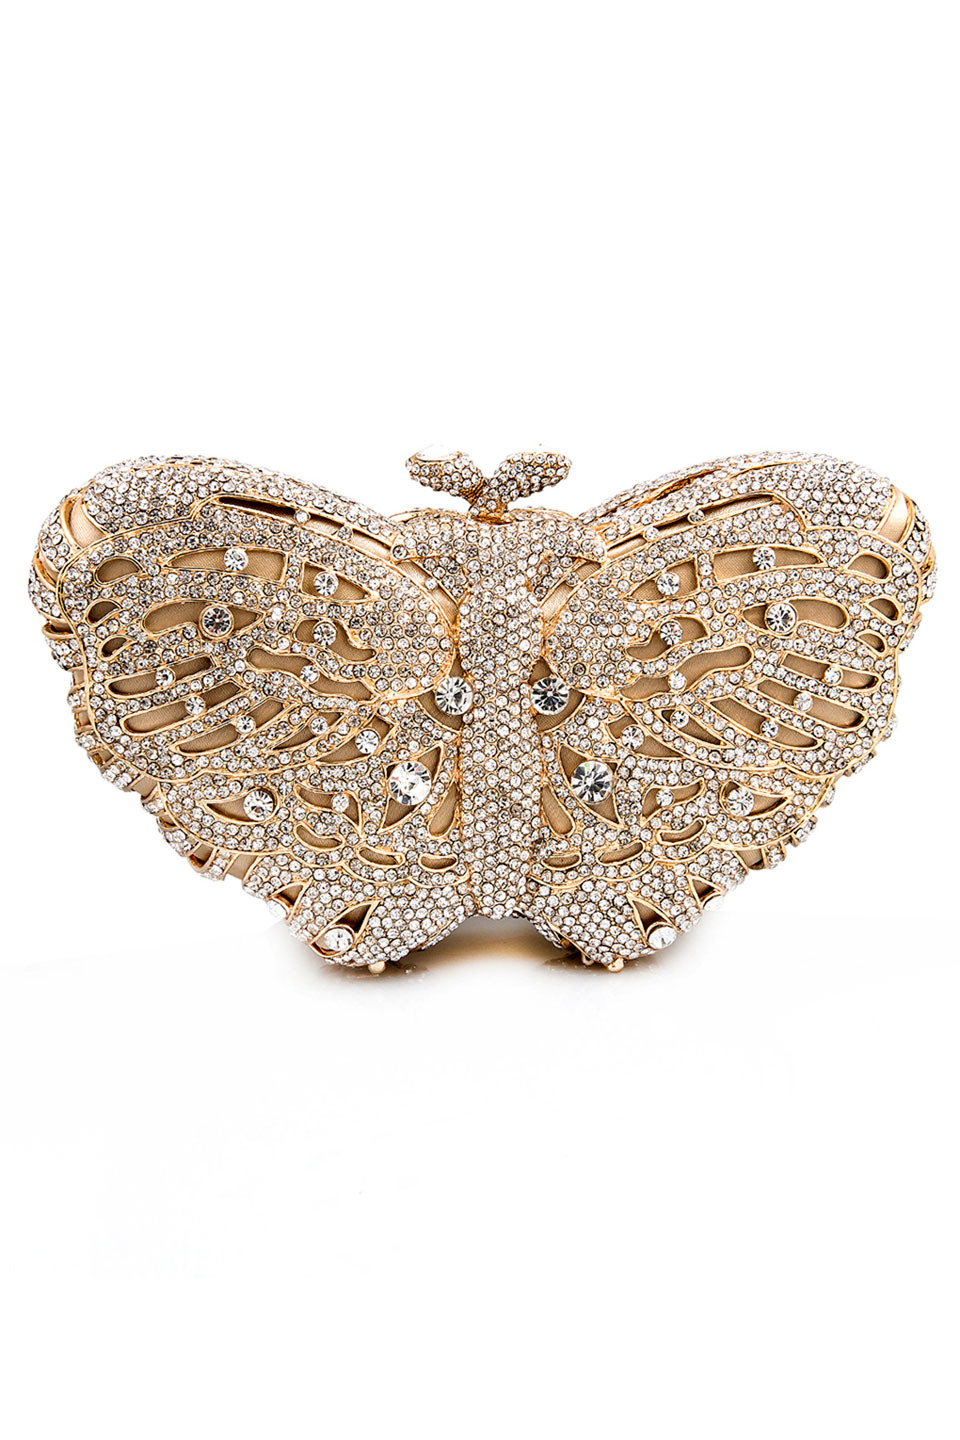 Crystal Butterfly Clutch in White